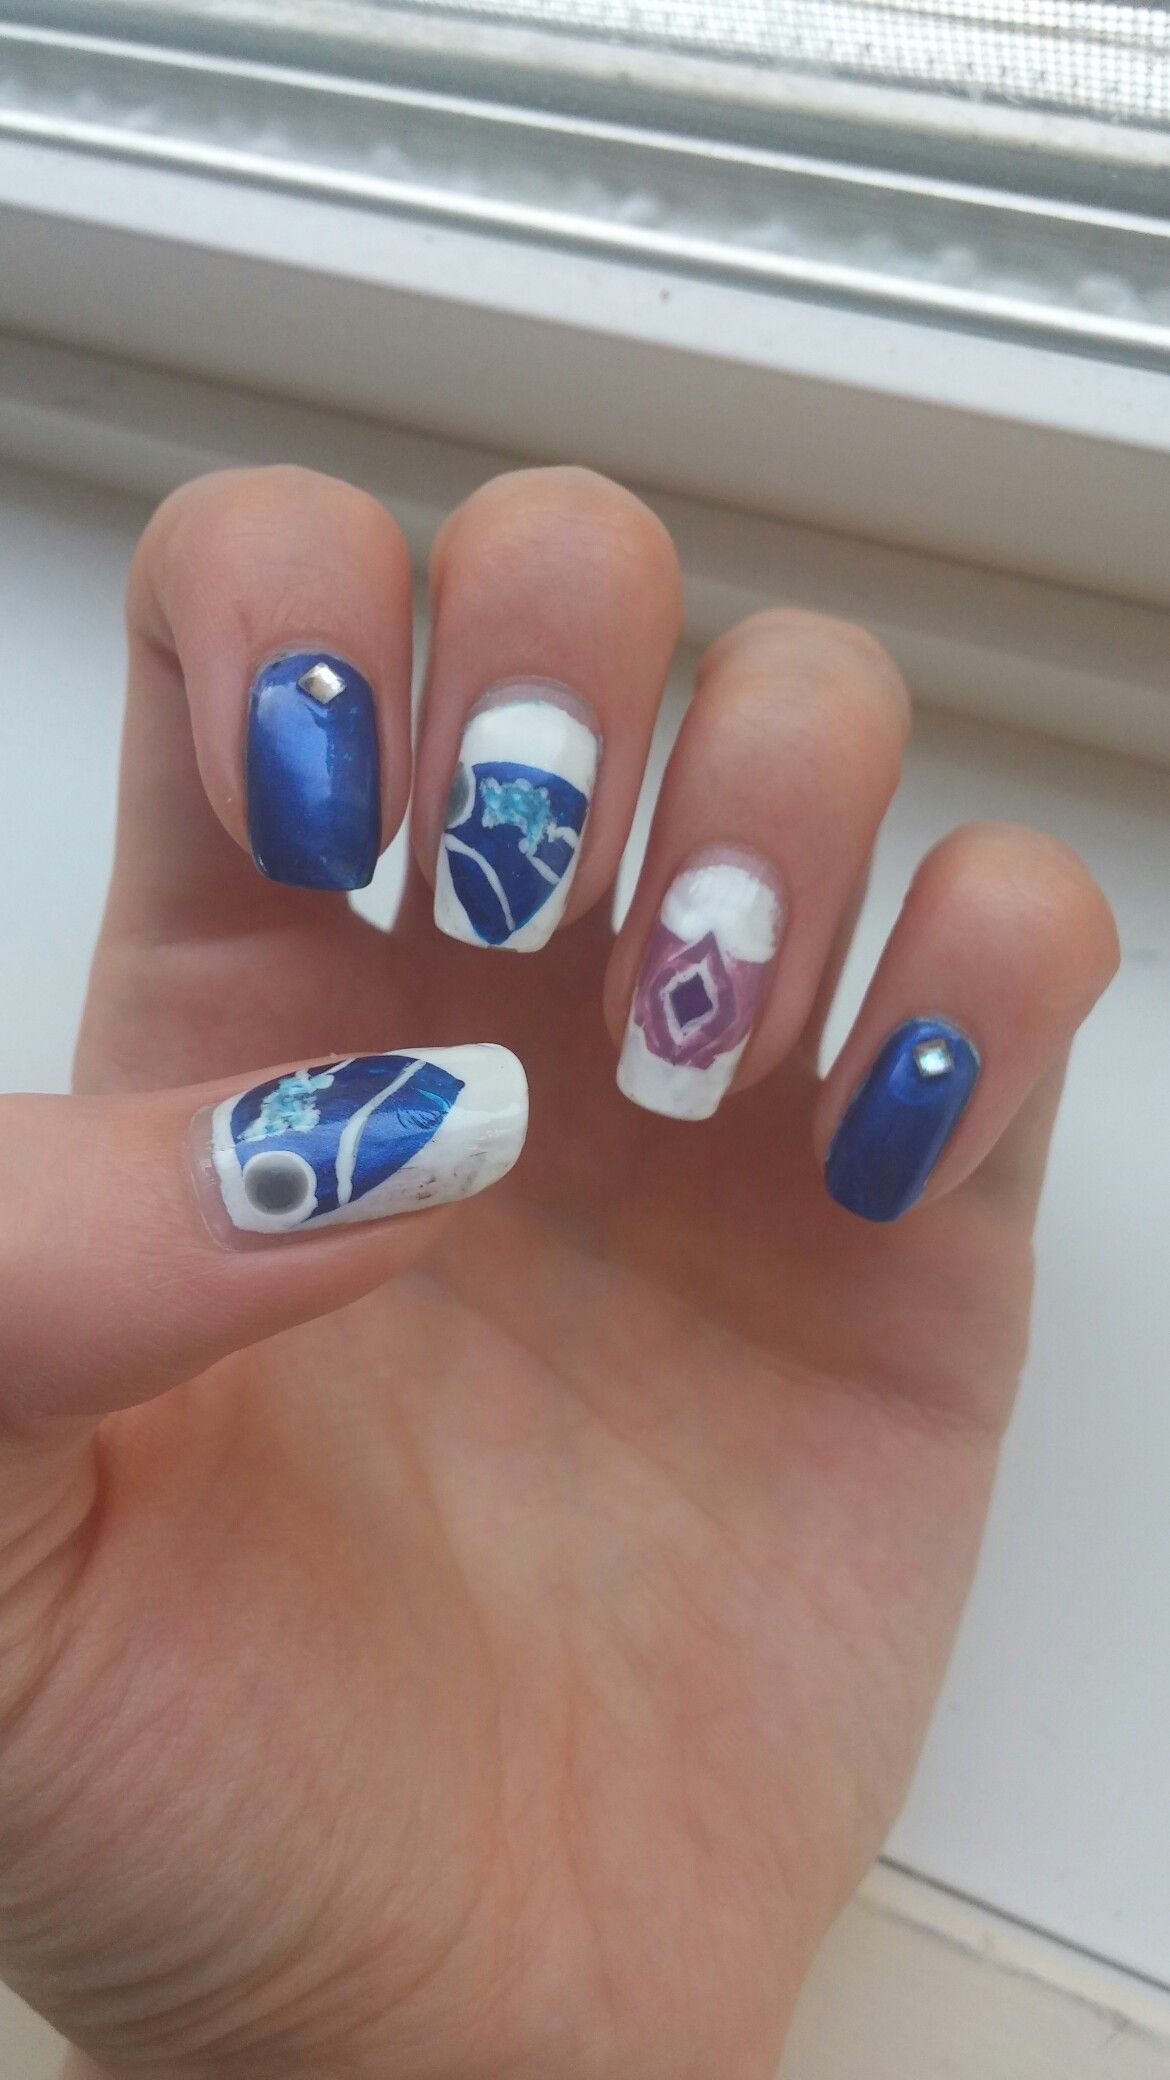 Rocket League Nails! #nerdnails #videogames #rocketleague | Nerdy ...